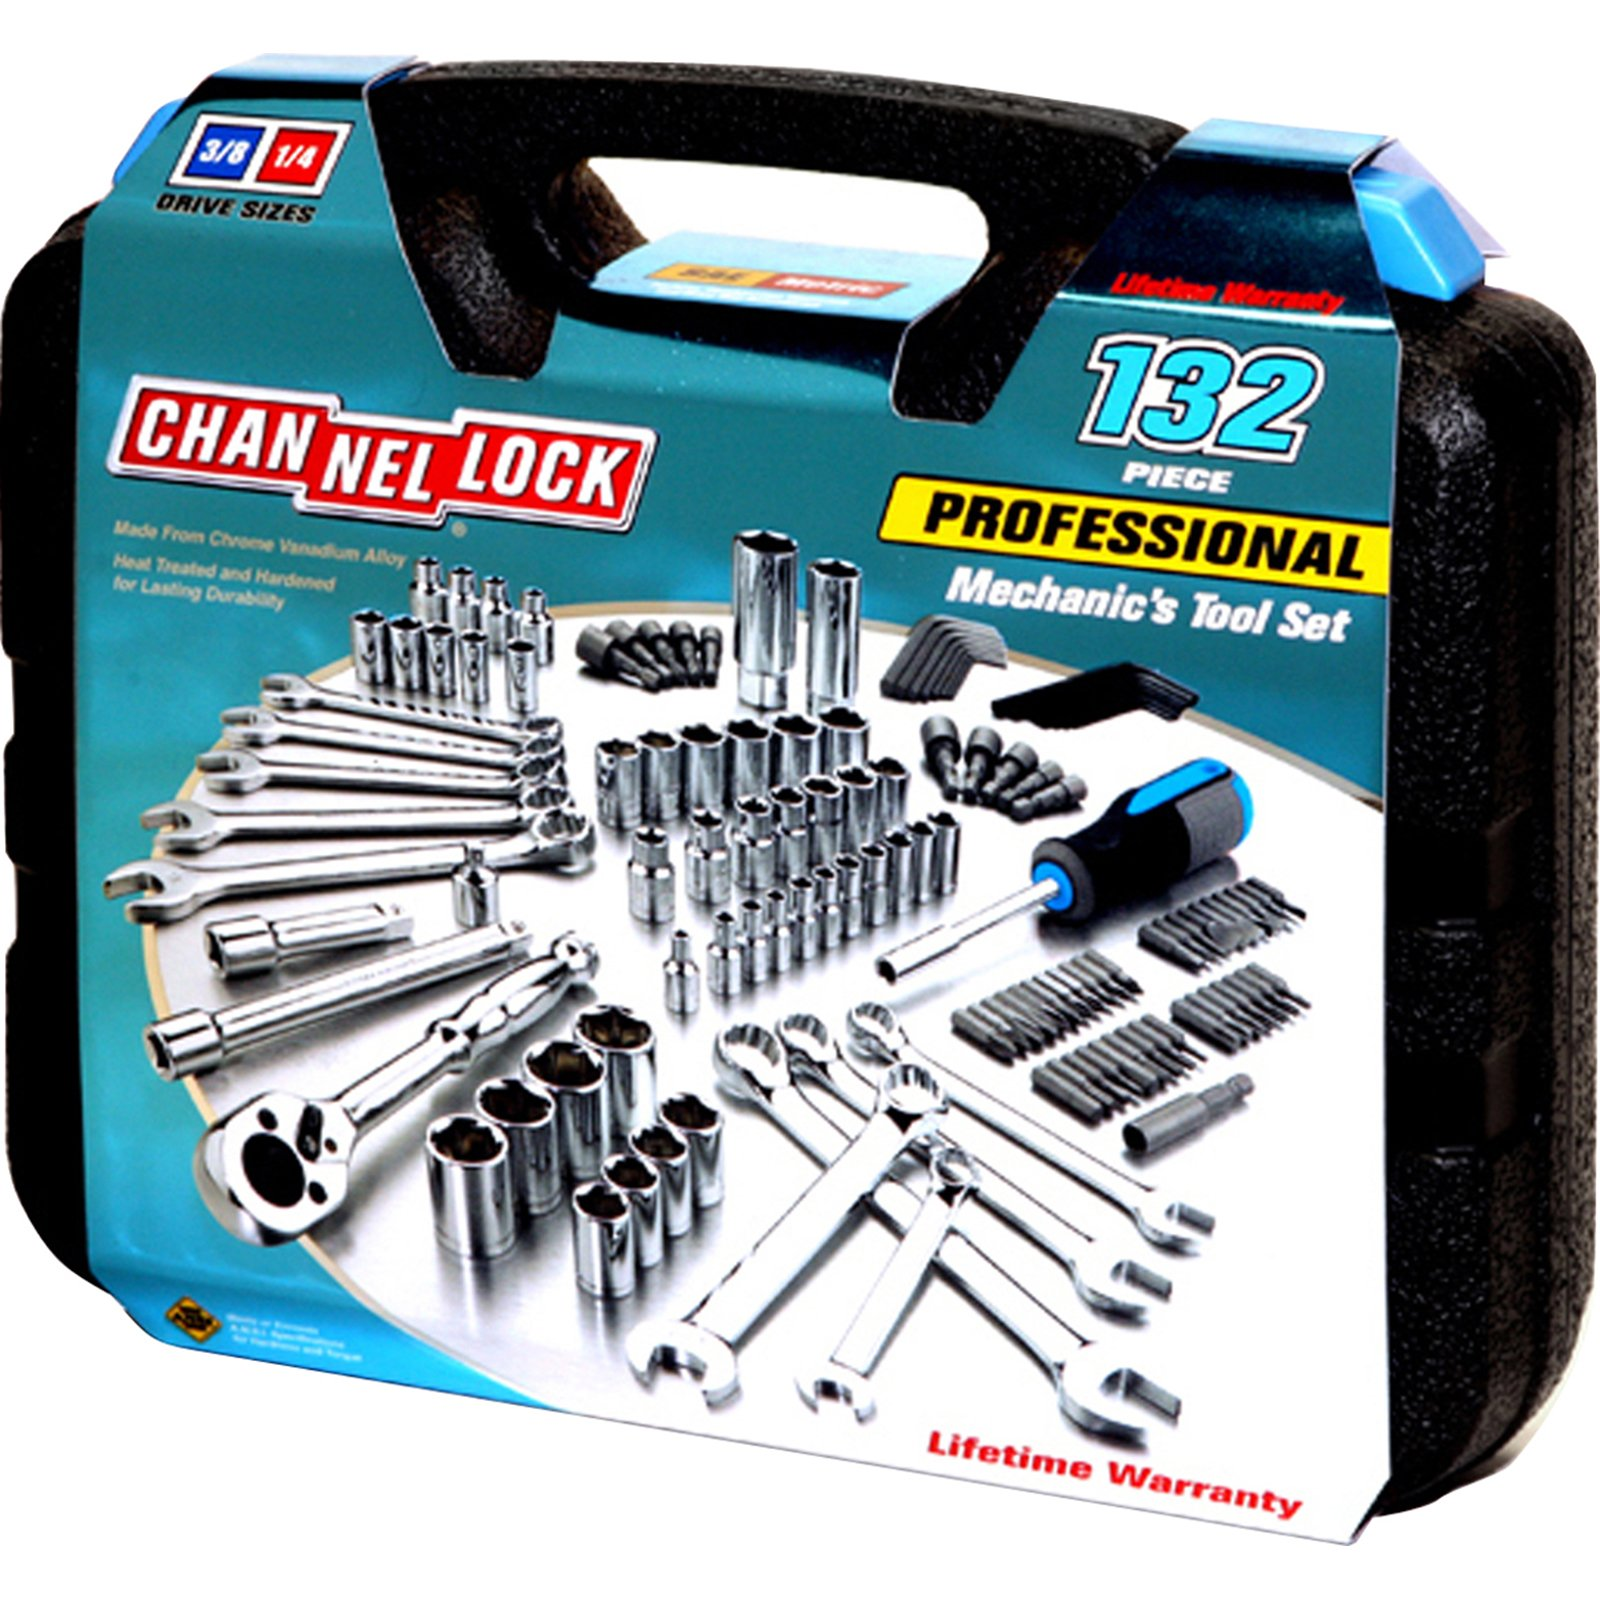 Channellock 39070 94 Piece Tool Set